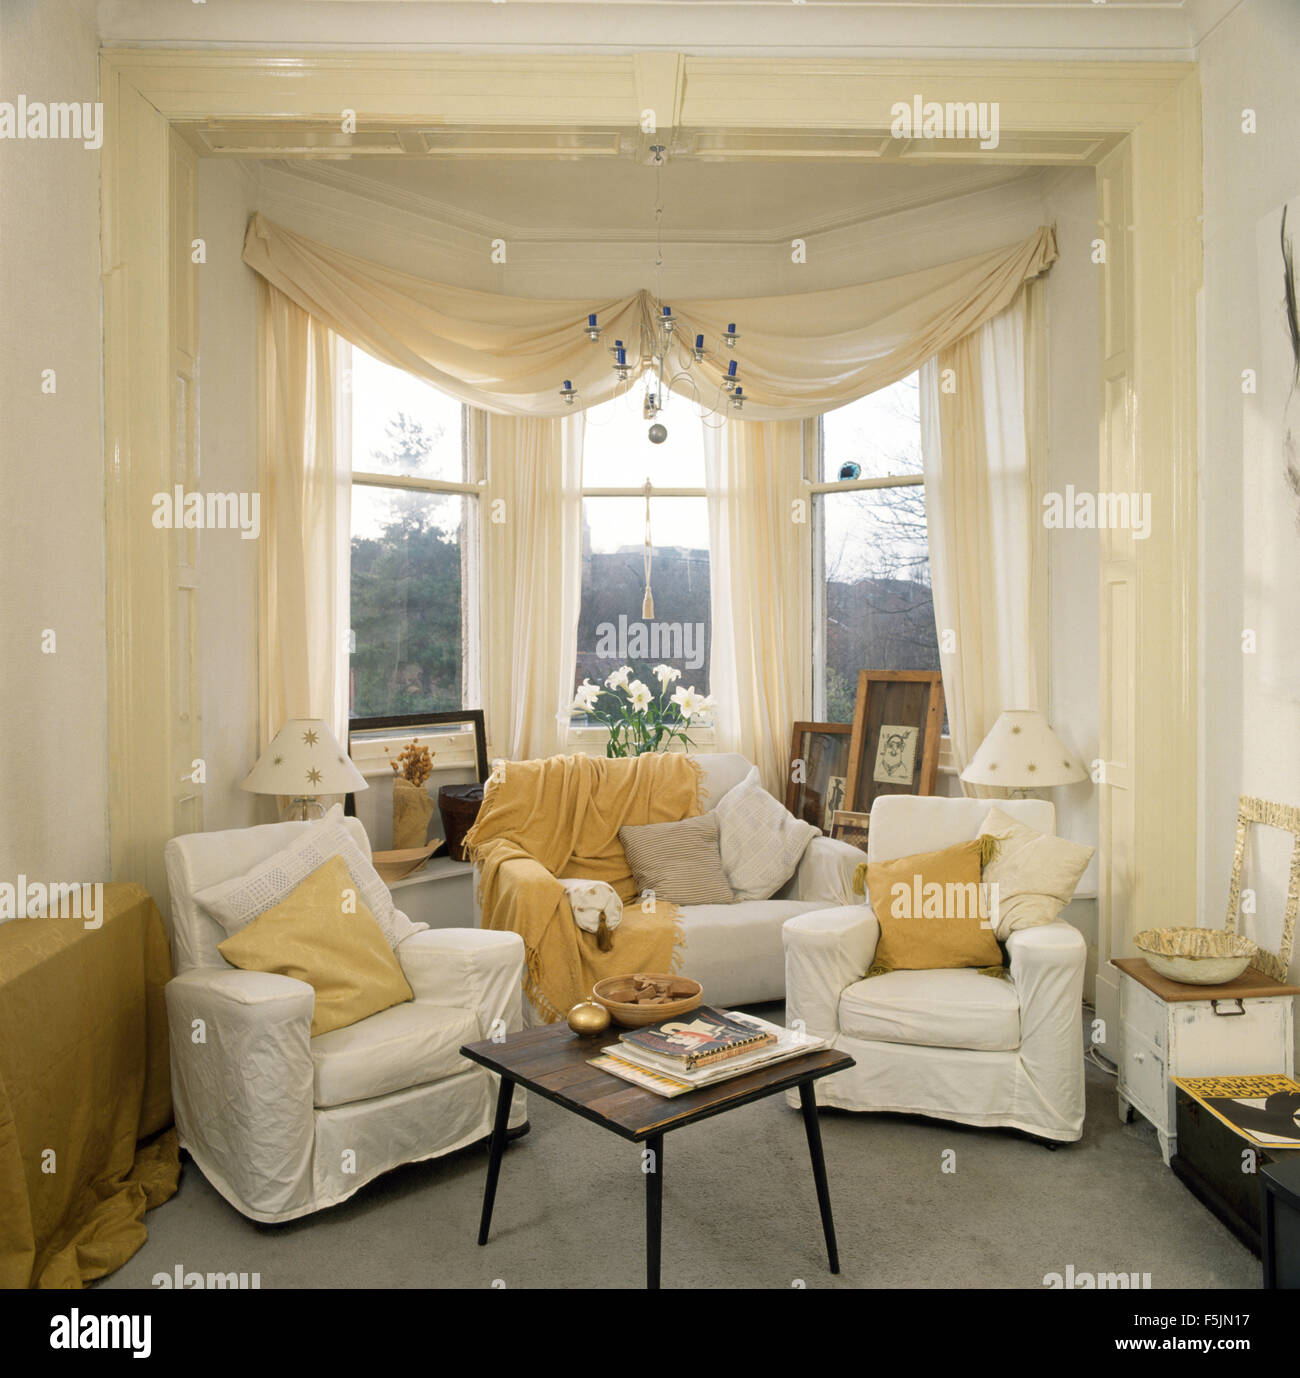 White Swagged Voile Curtains On Bay Window In A Nineties